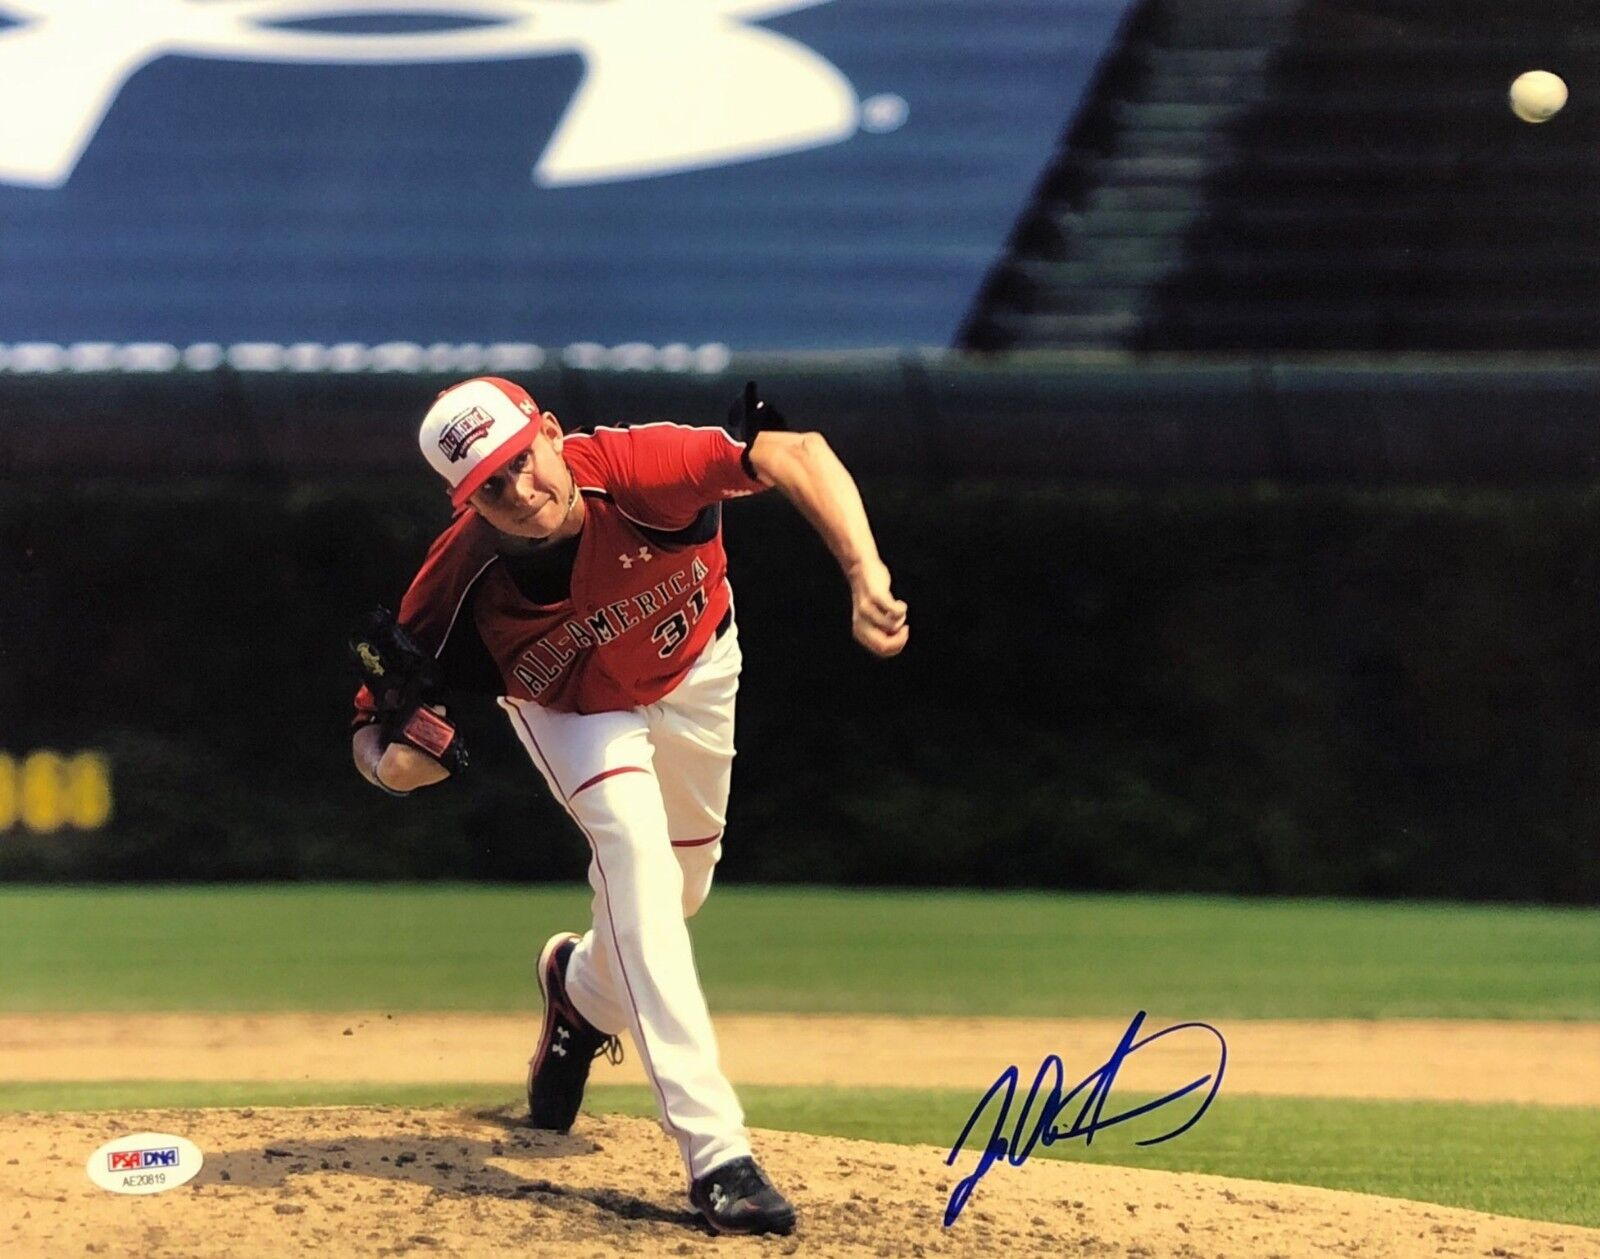 Tyler Matzek Signed Baseball 11x14 Photo *All American *Rockies PSA AE20819